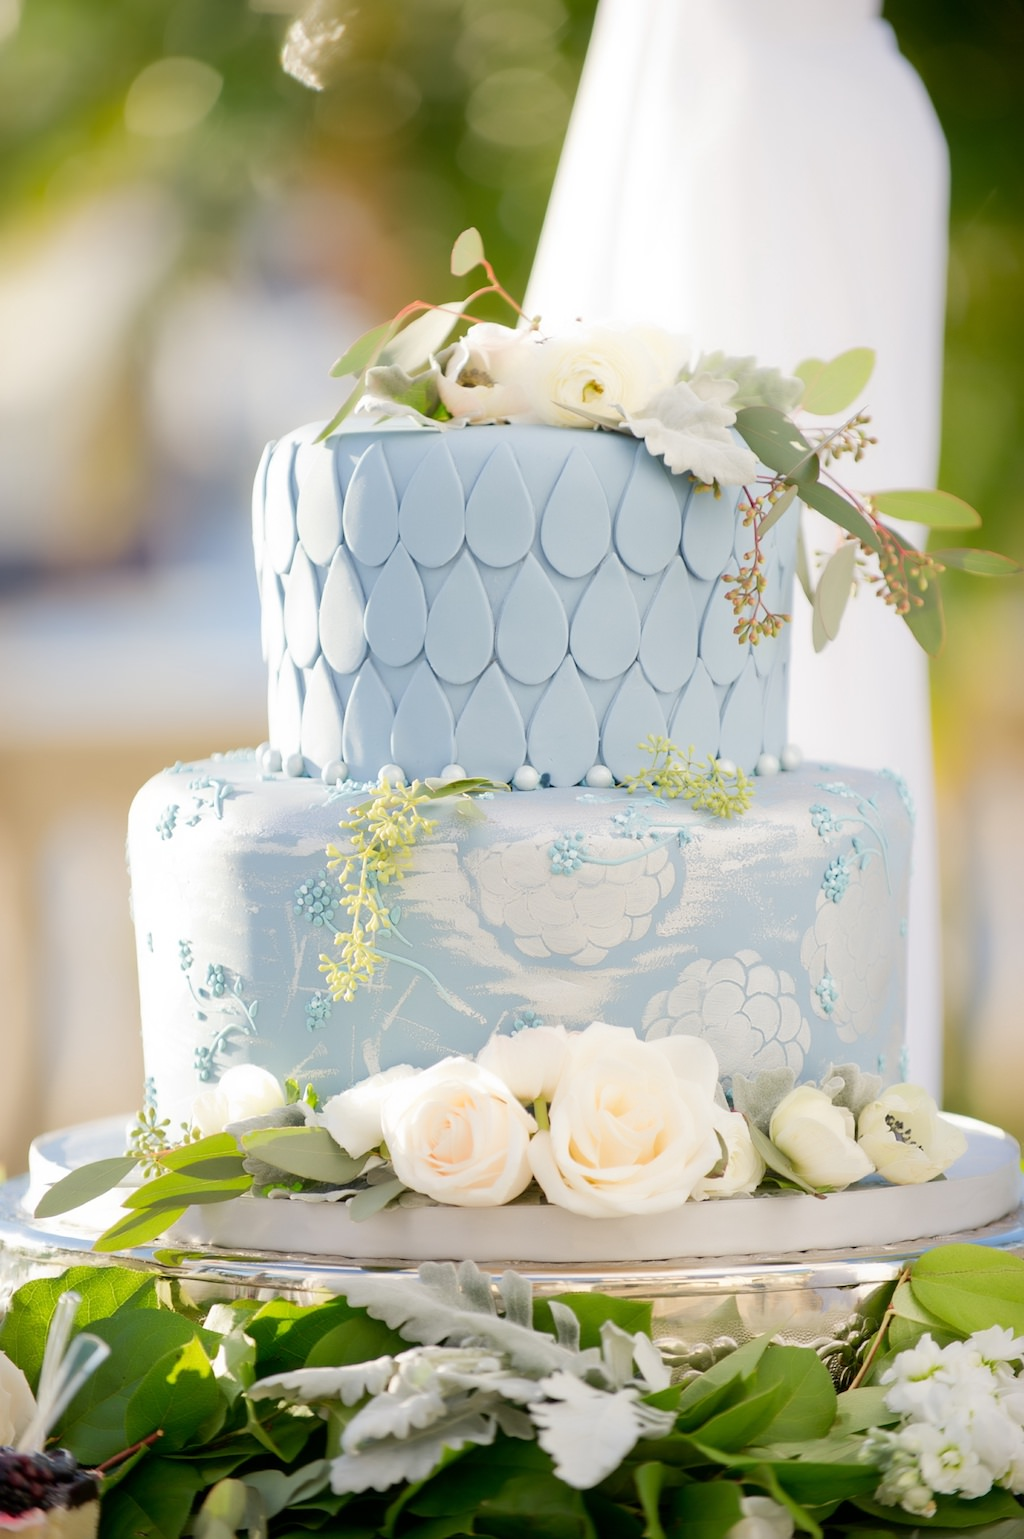 Two Tiered Hand Painted Light Blue And White Wedding Cake With White